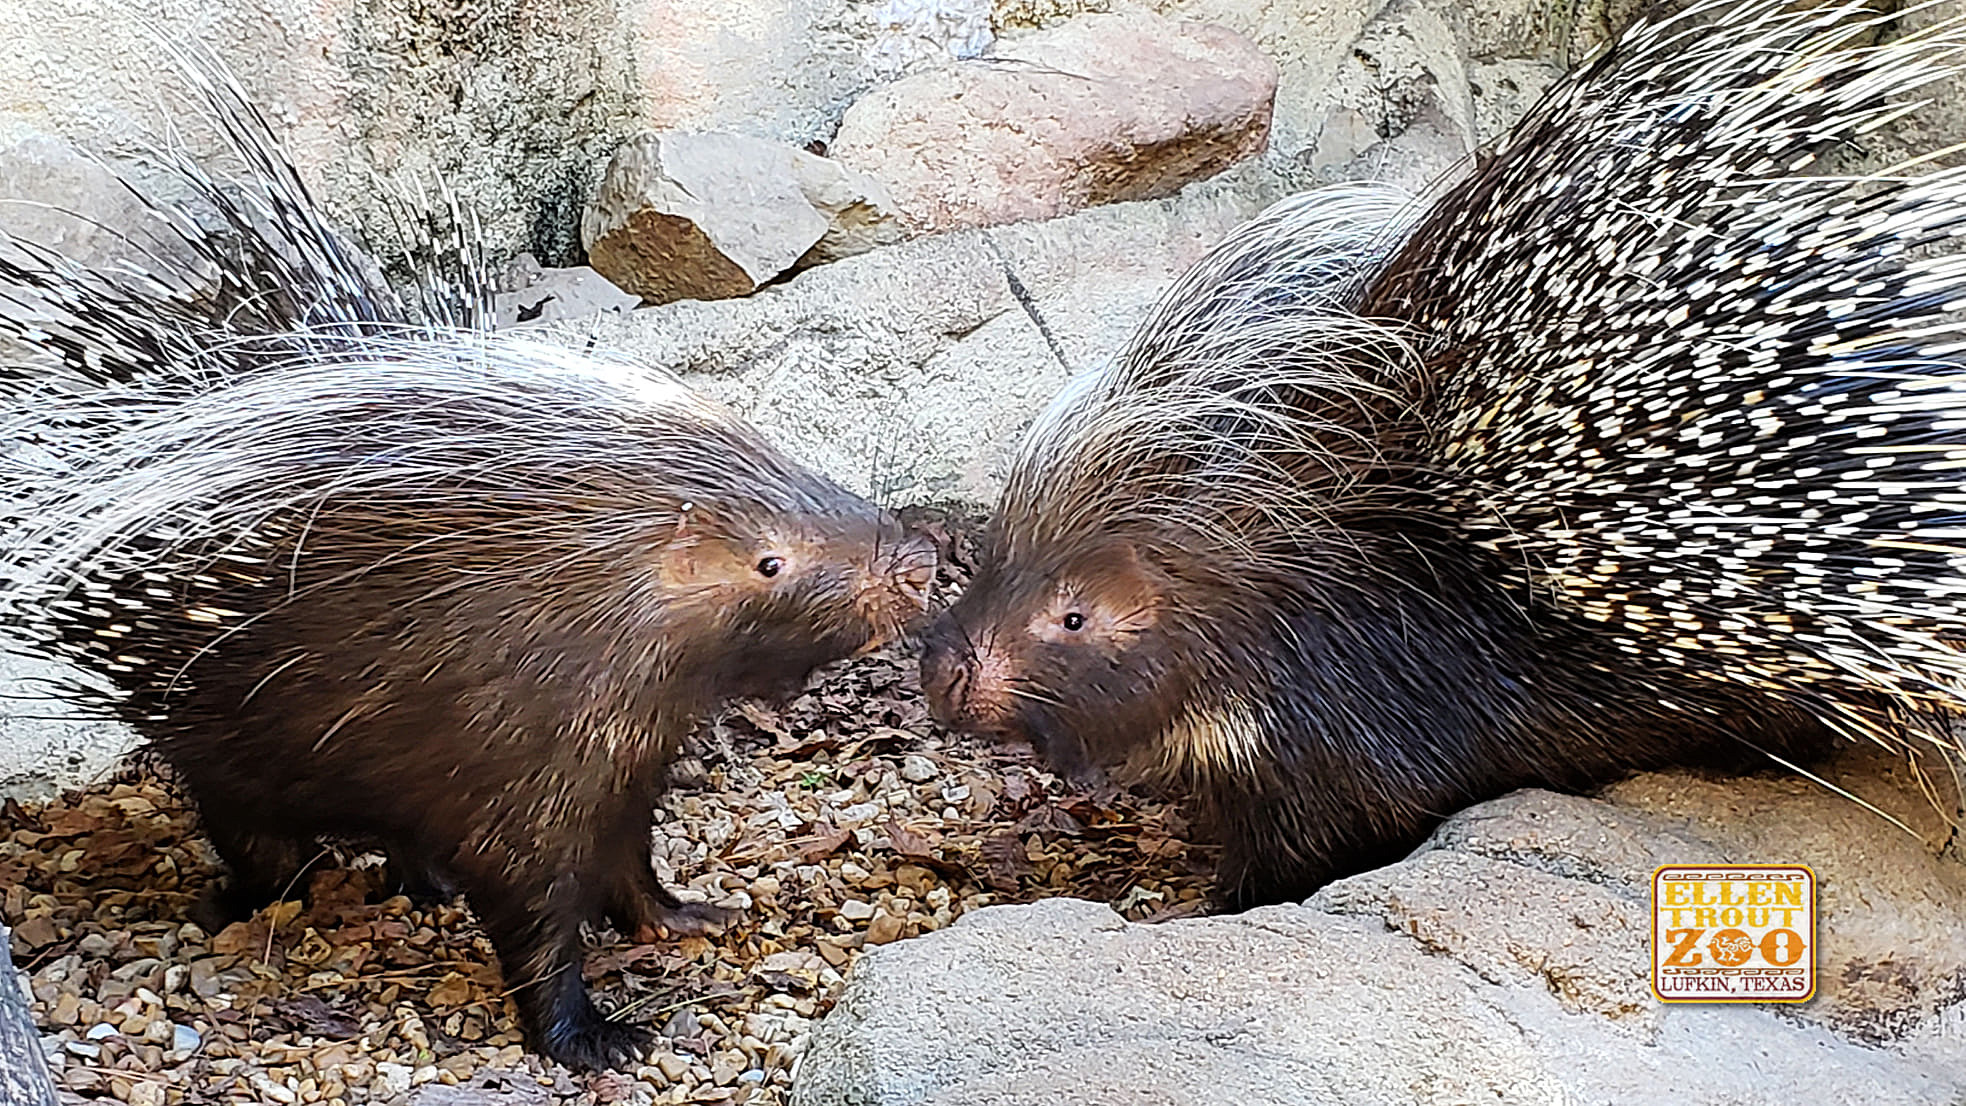 Love is in the Air At Ellen Trout Zoo